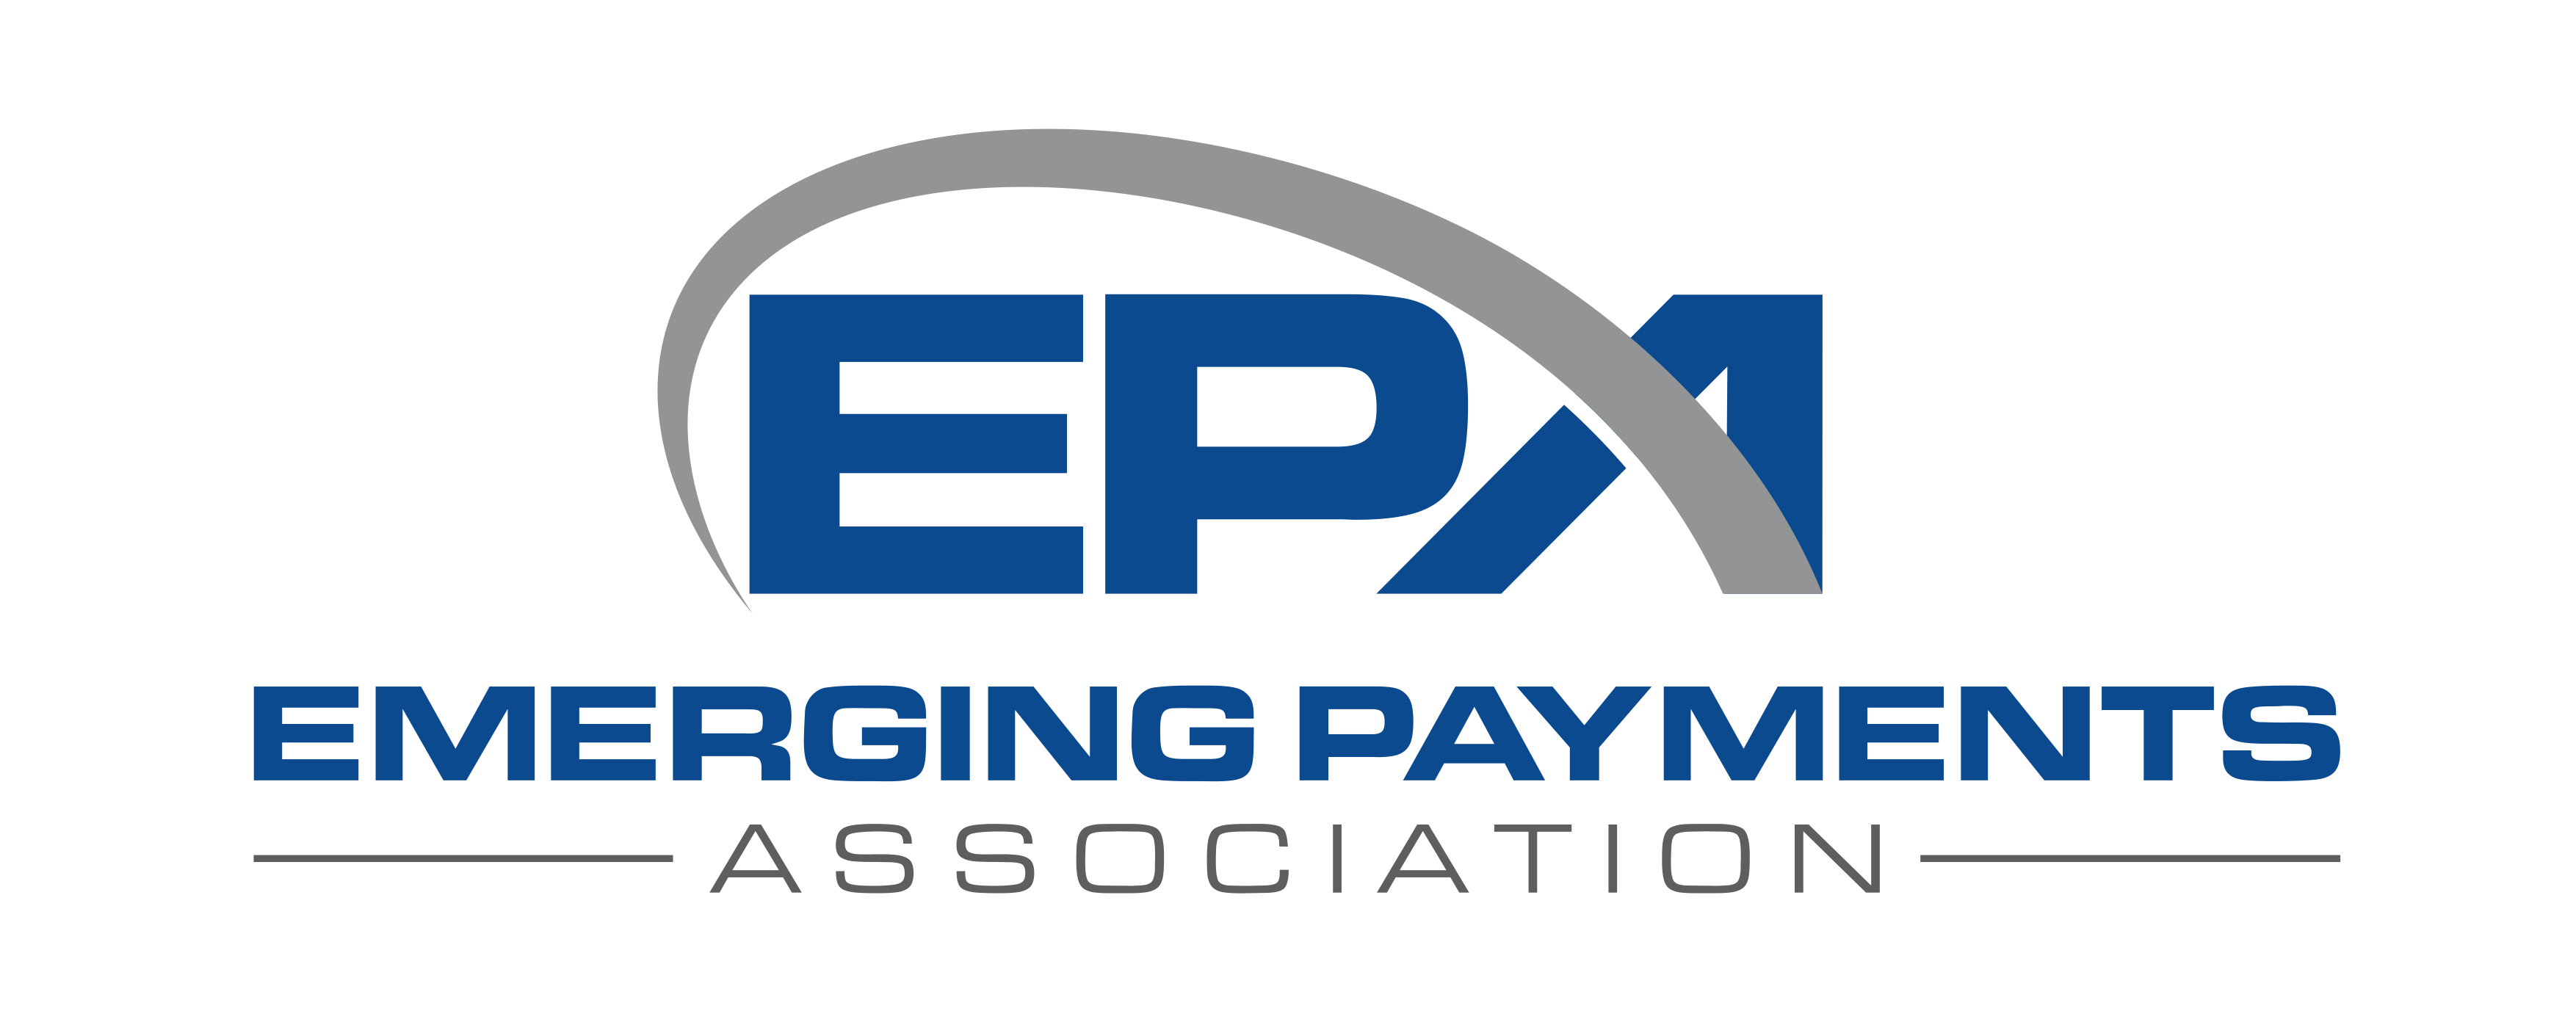 EPA publishes payment providers guidance in a call for transparency